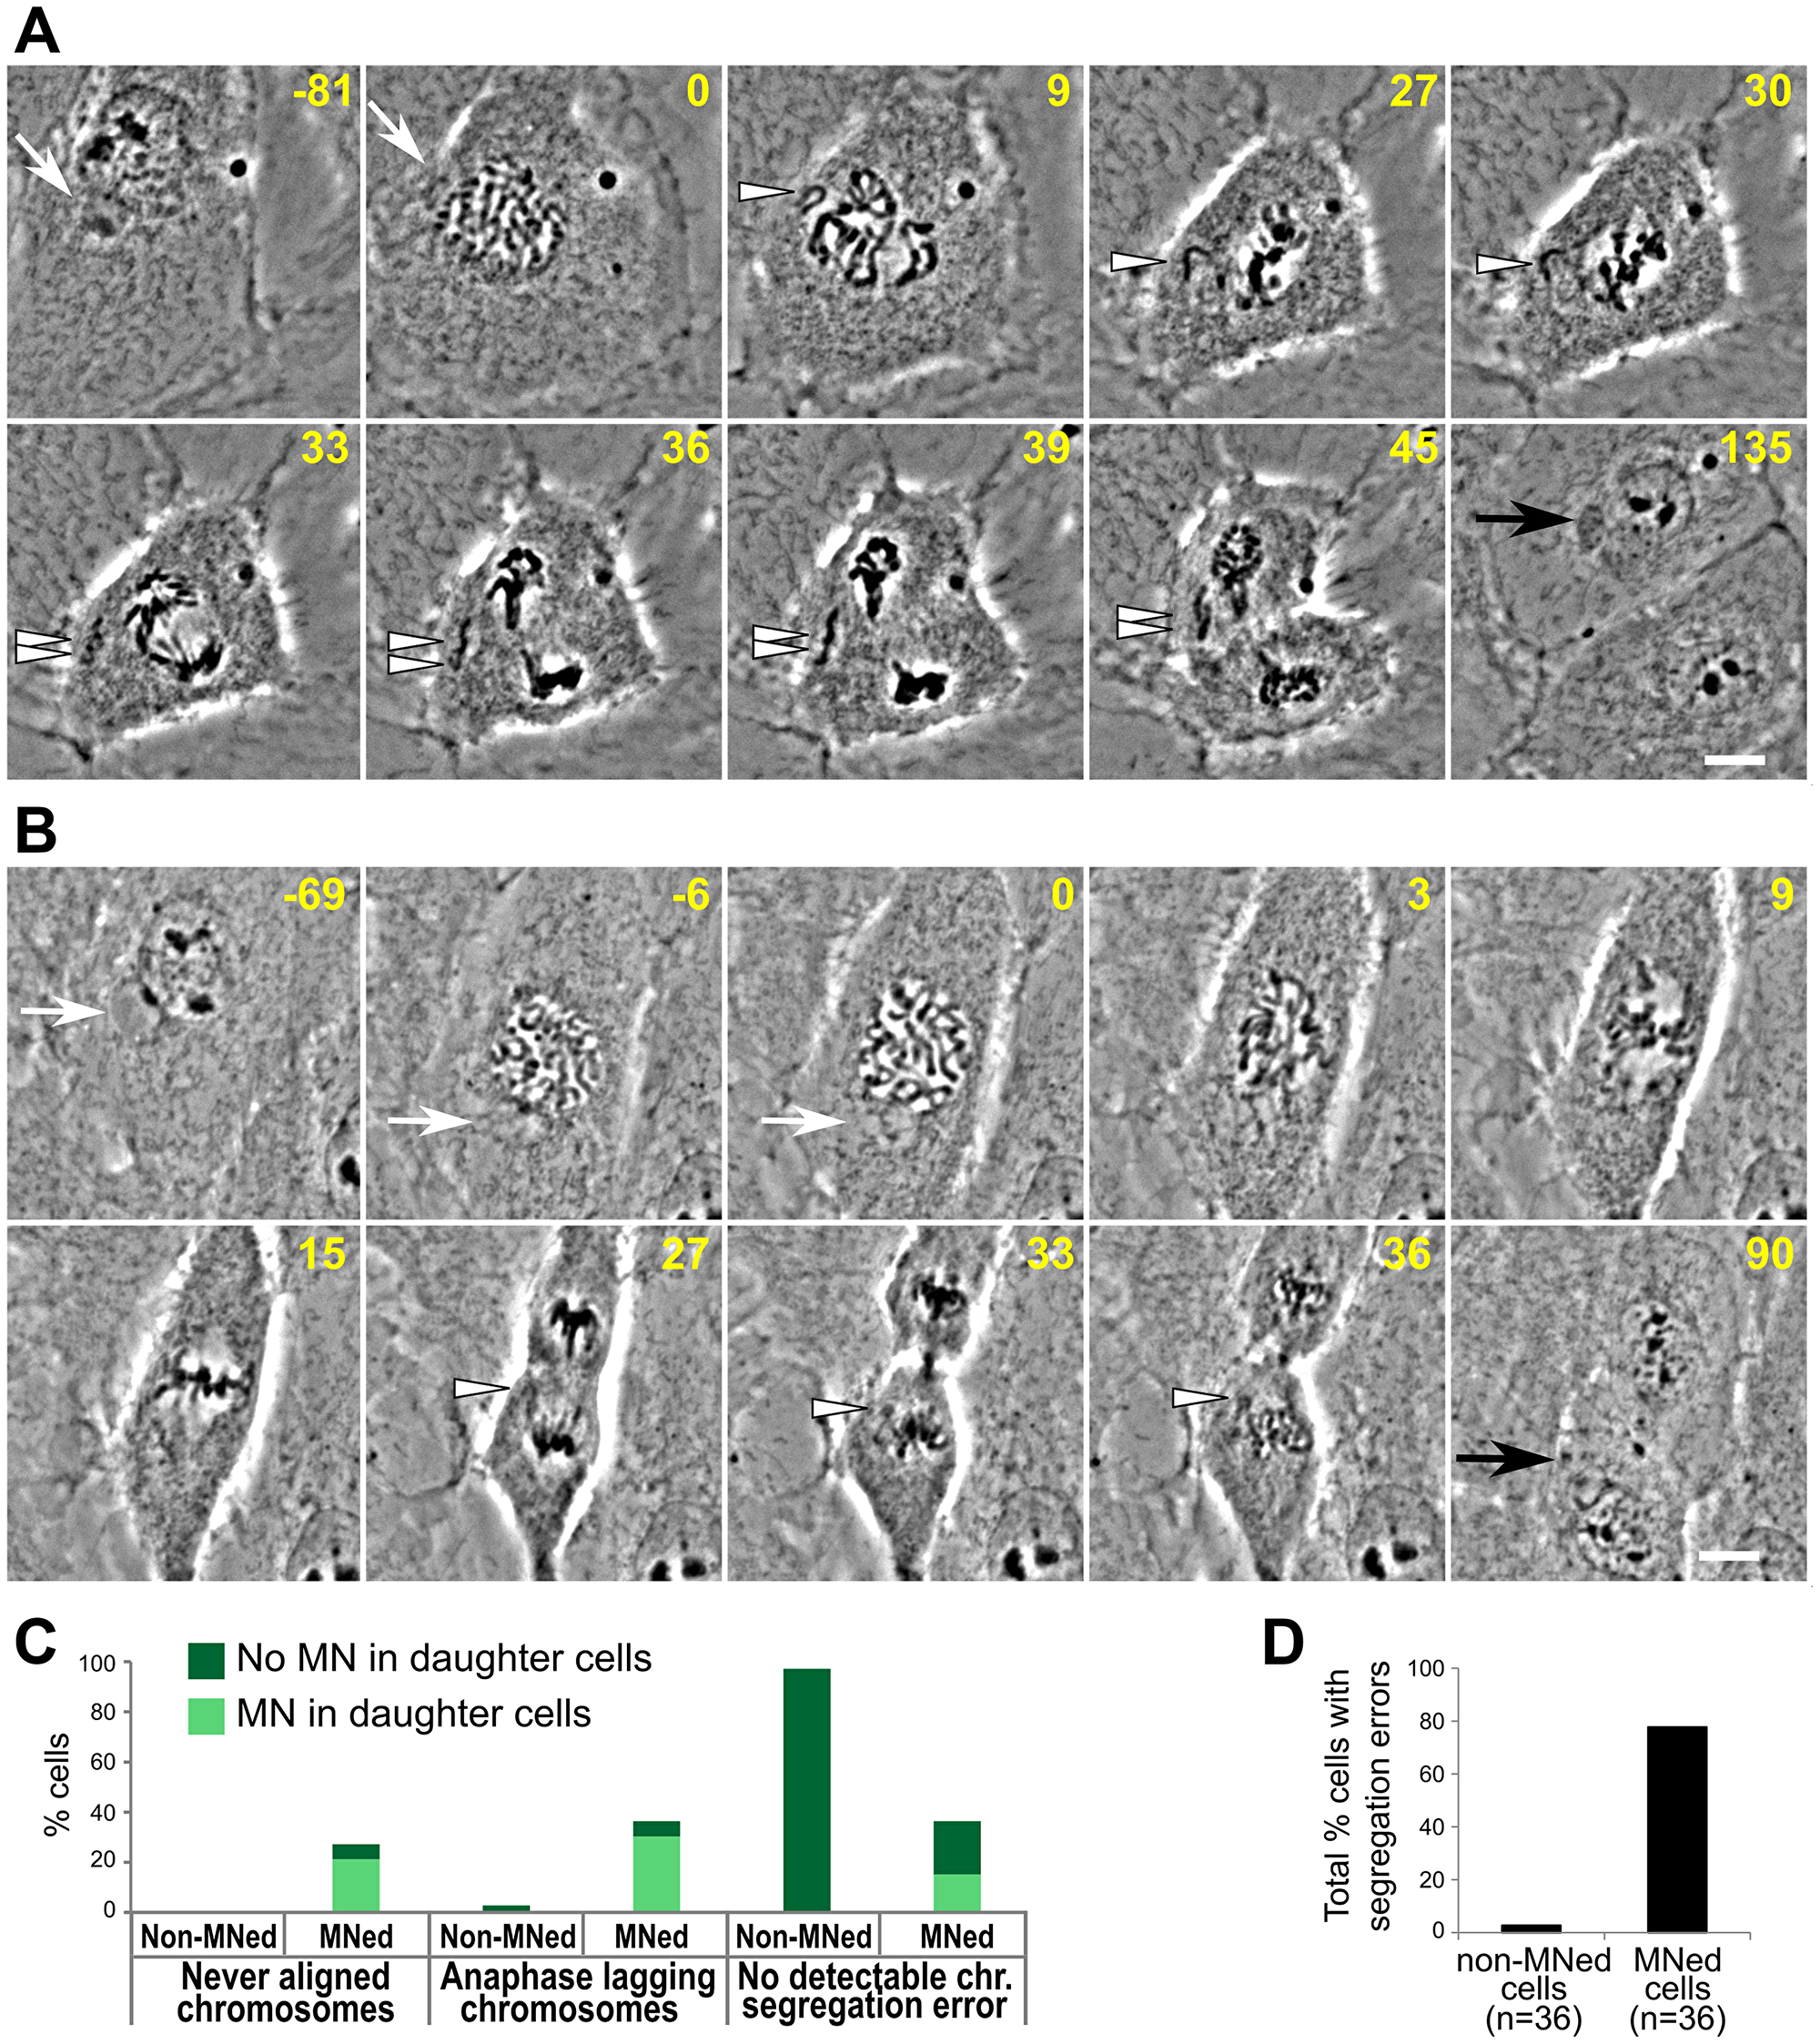 High rates of chromosome segregation errors in MNed cells.